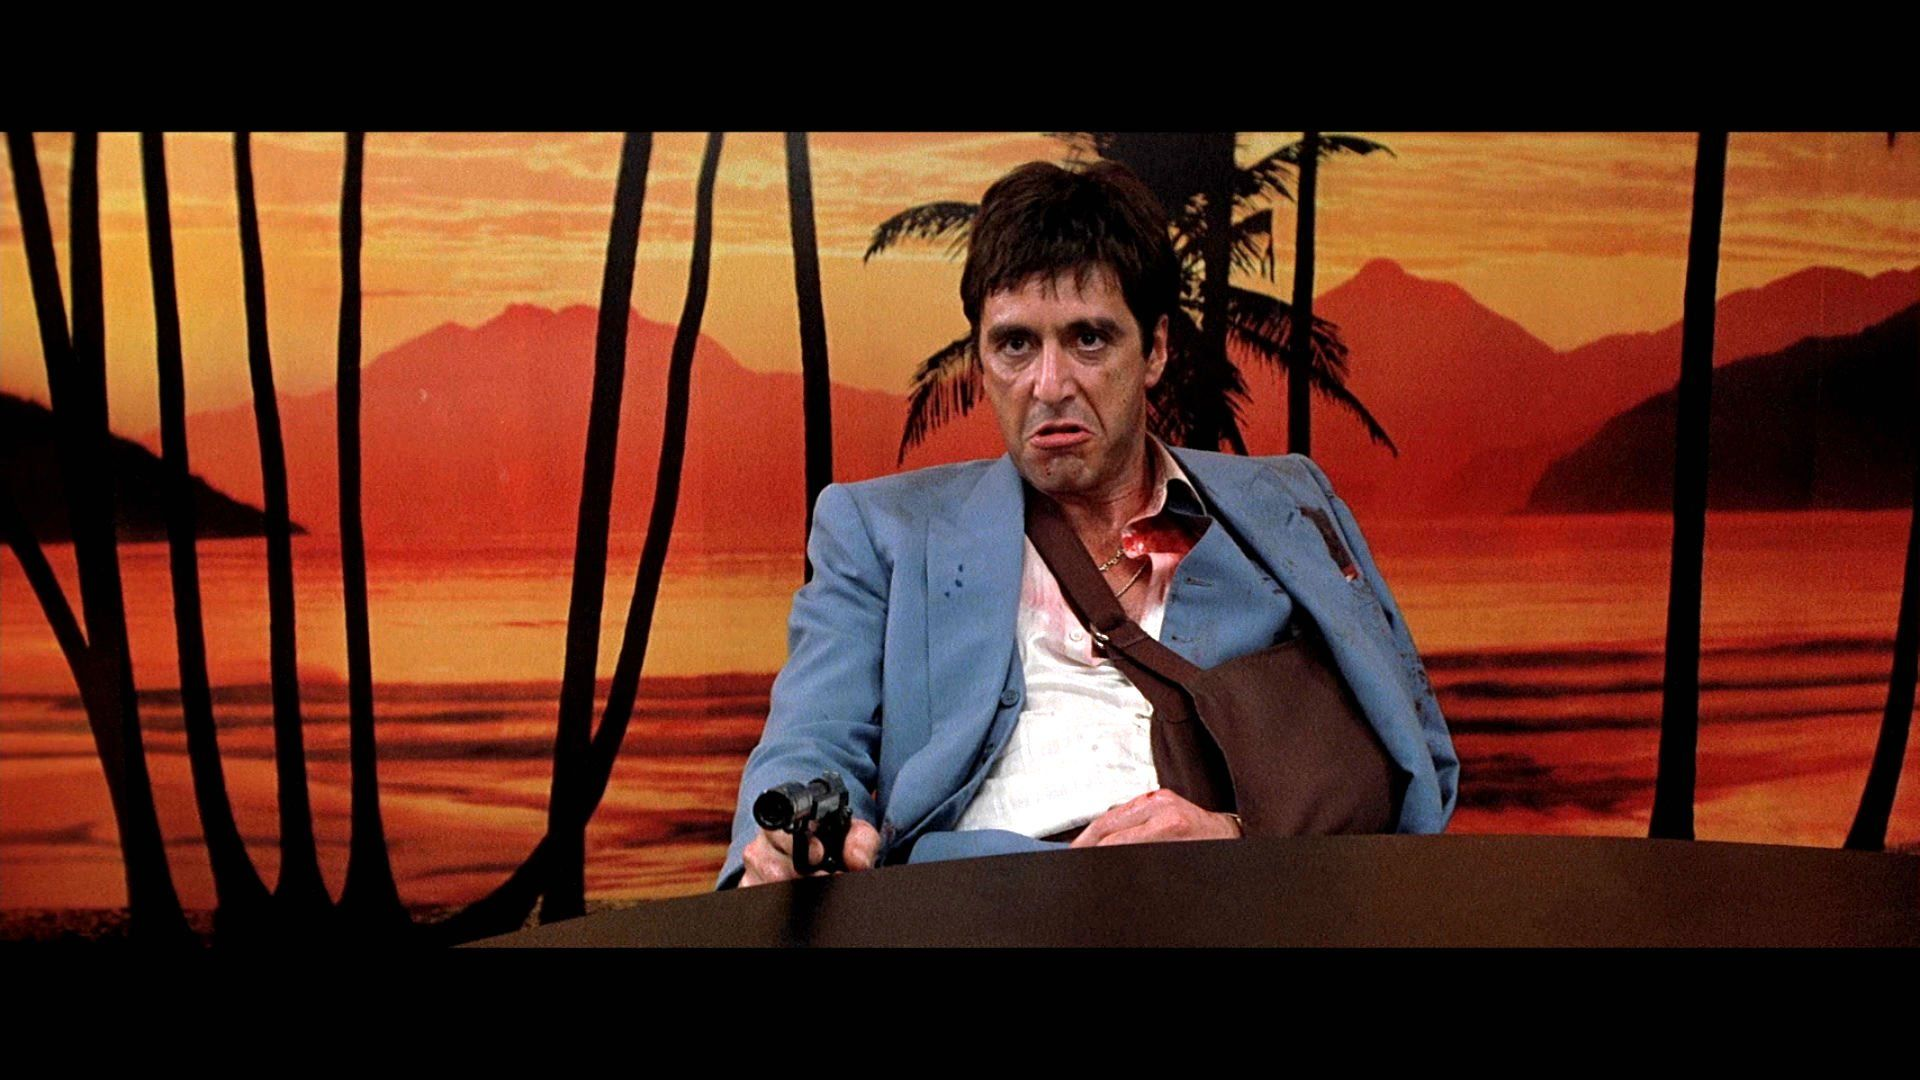 Top Scarface Picture In High Quality GoldWallpapers